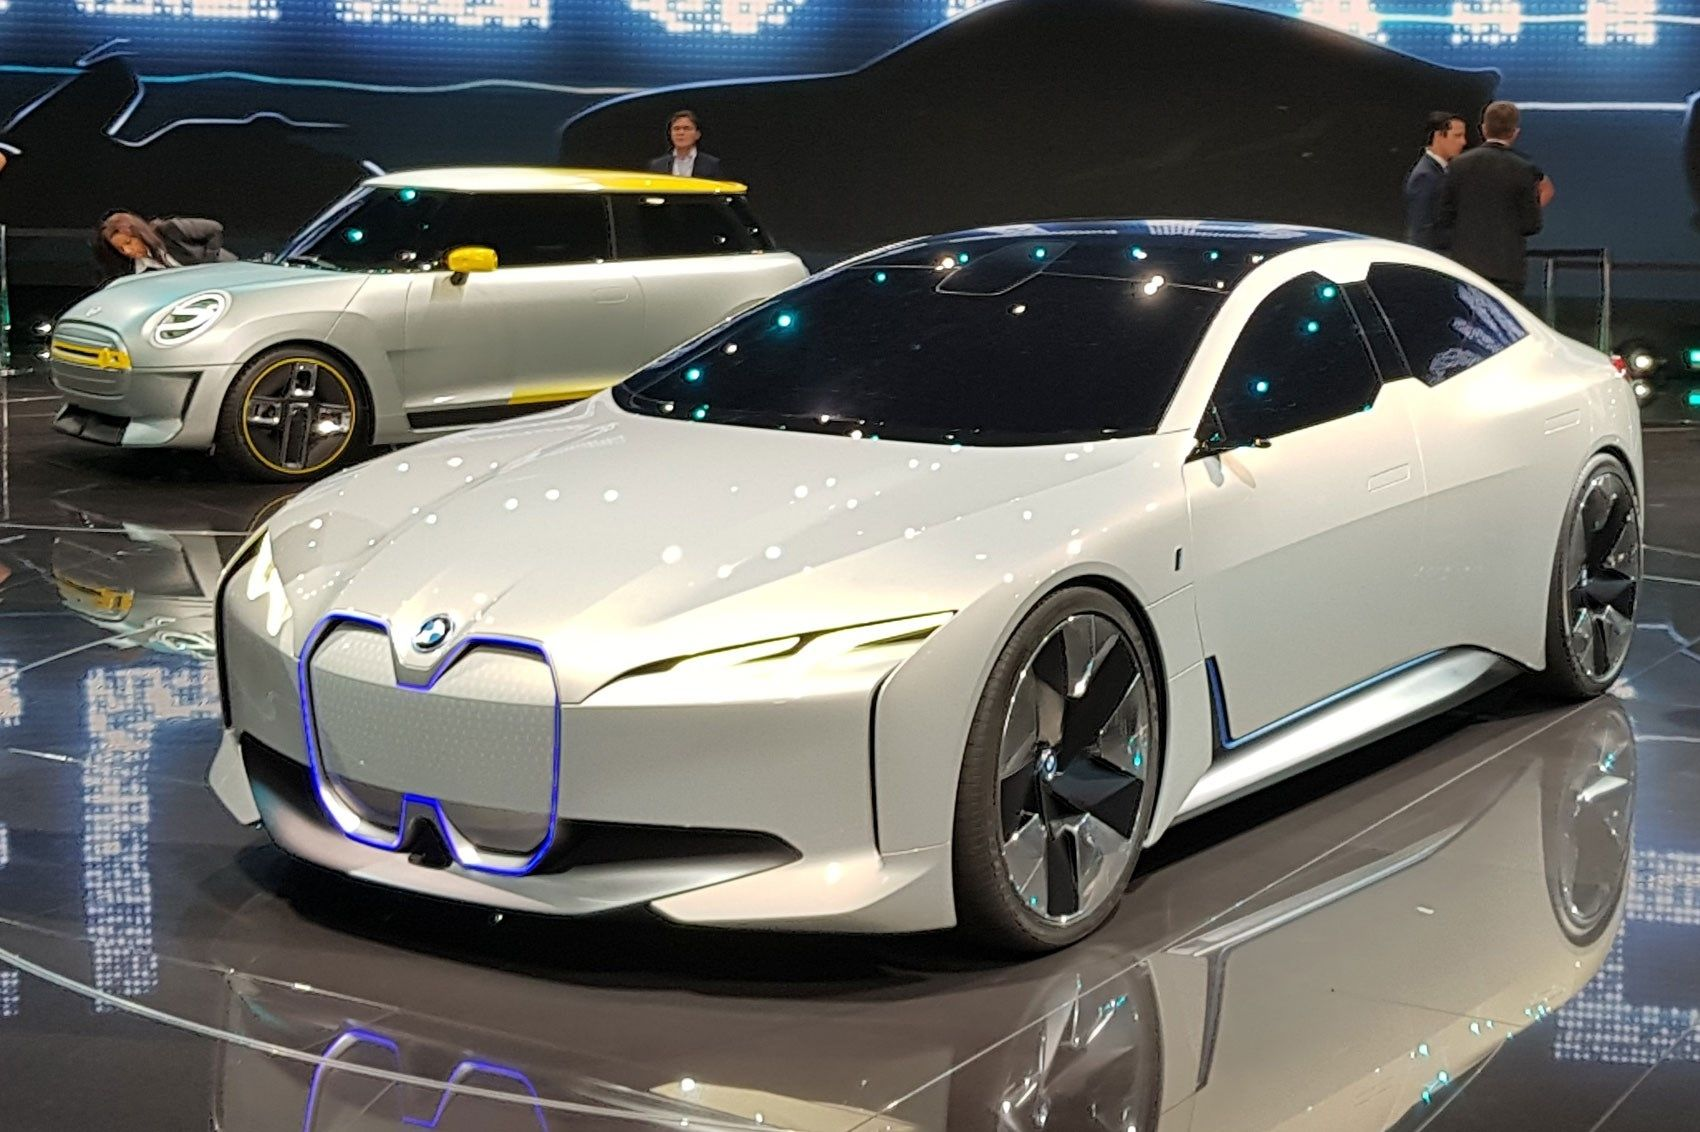 Bmw Concept Car 2020 Release Specs And Review Bmw Concept Car Bmw Truck Bmw